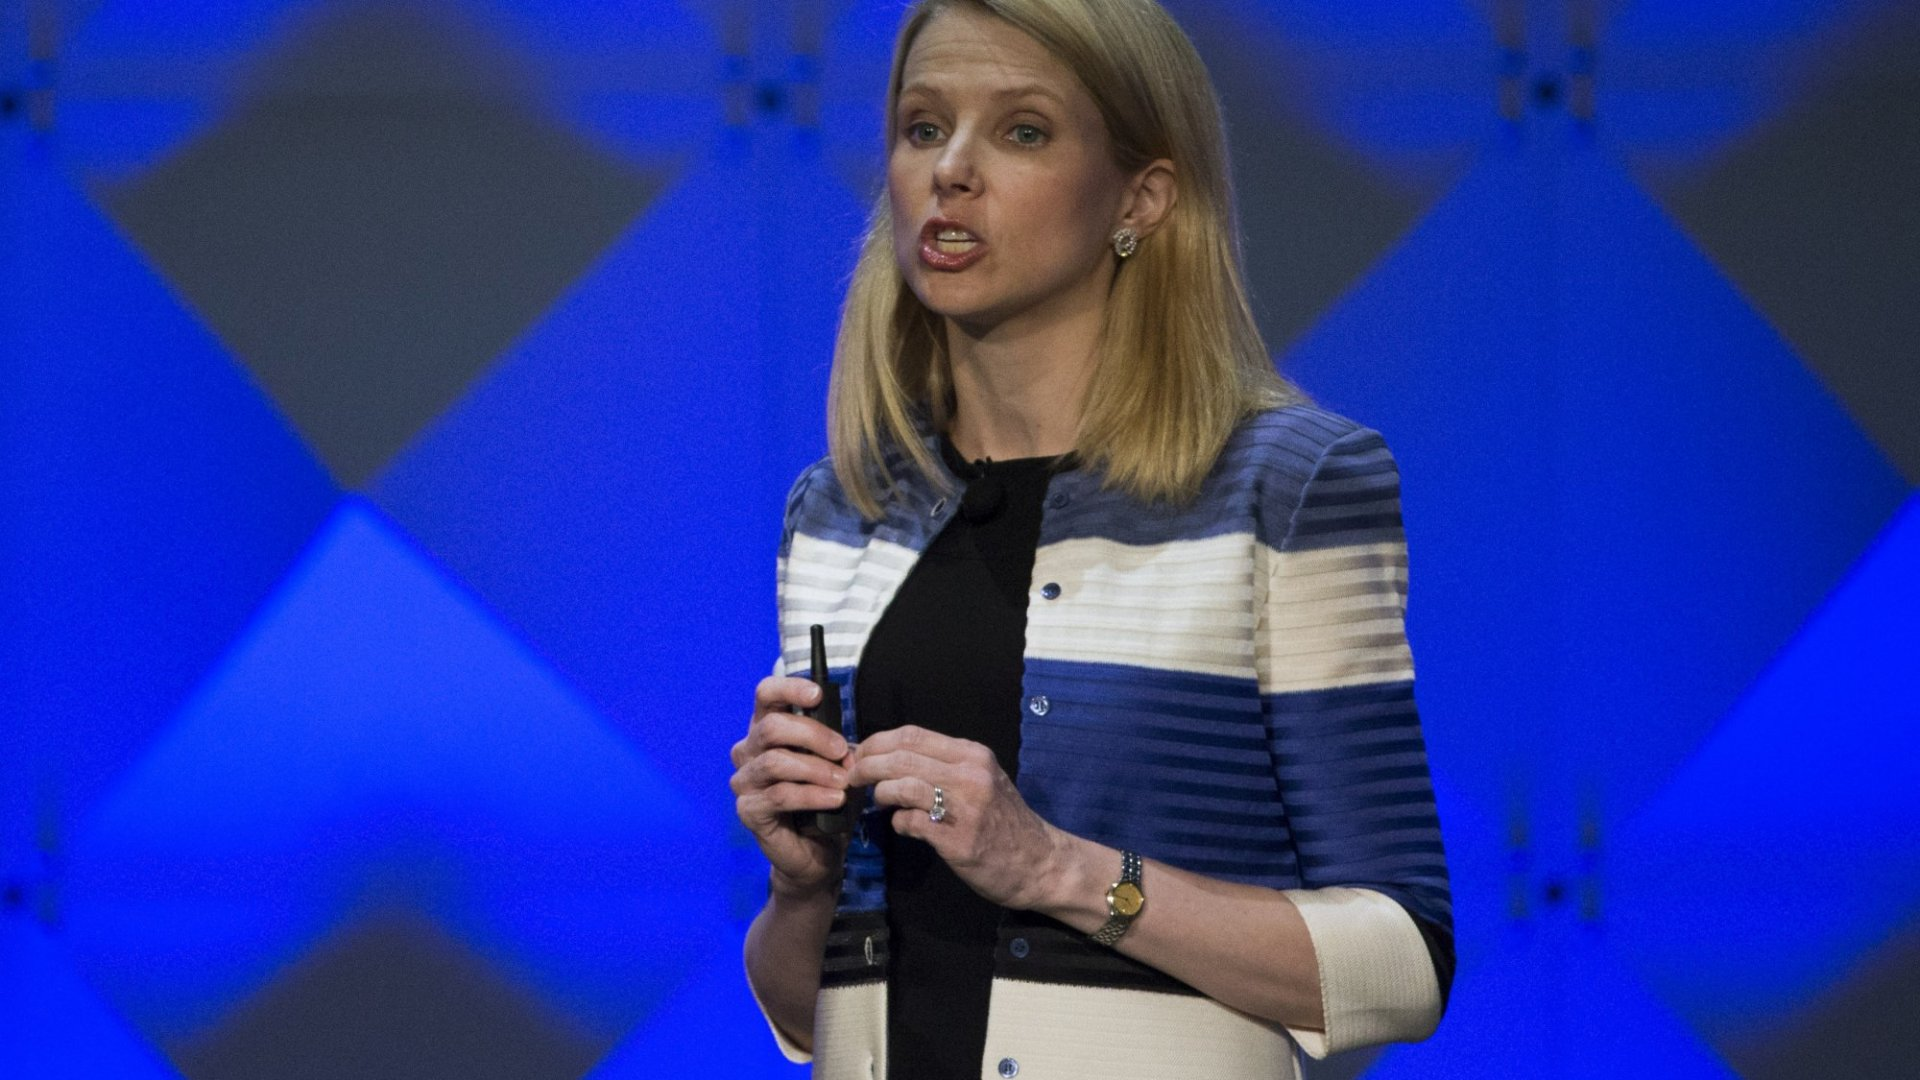 Yahoo CEO Marissa Mayer Wants 3 More Years, But Why?